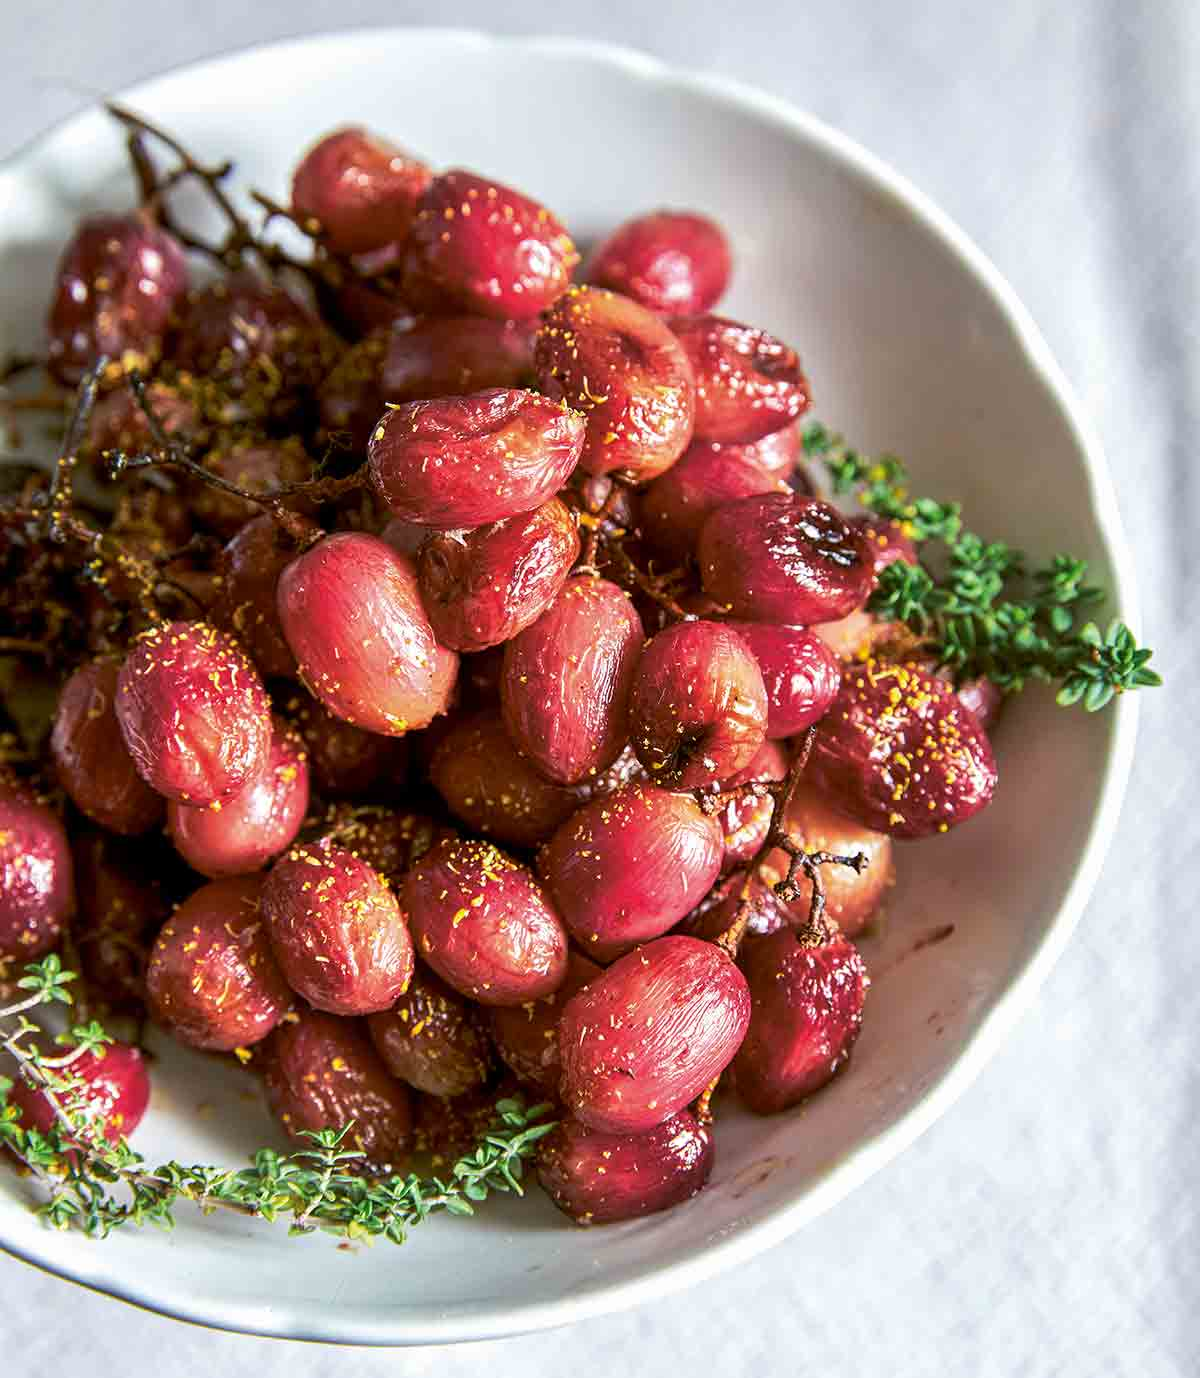 Several bunches of roasted grapes on the vine in a white bowl.